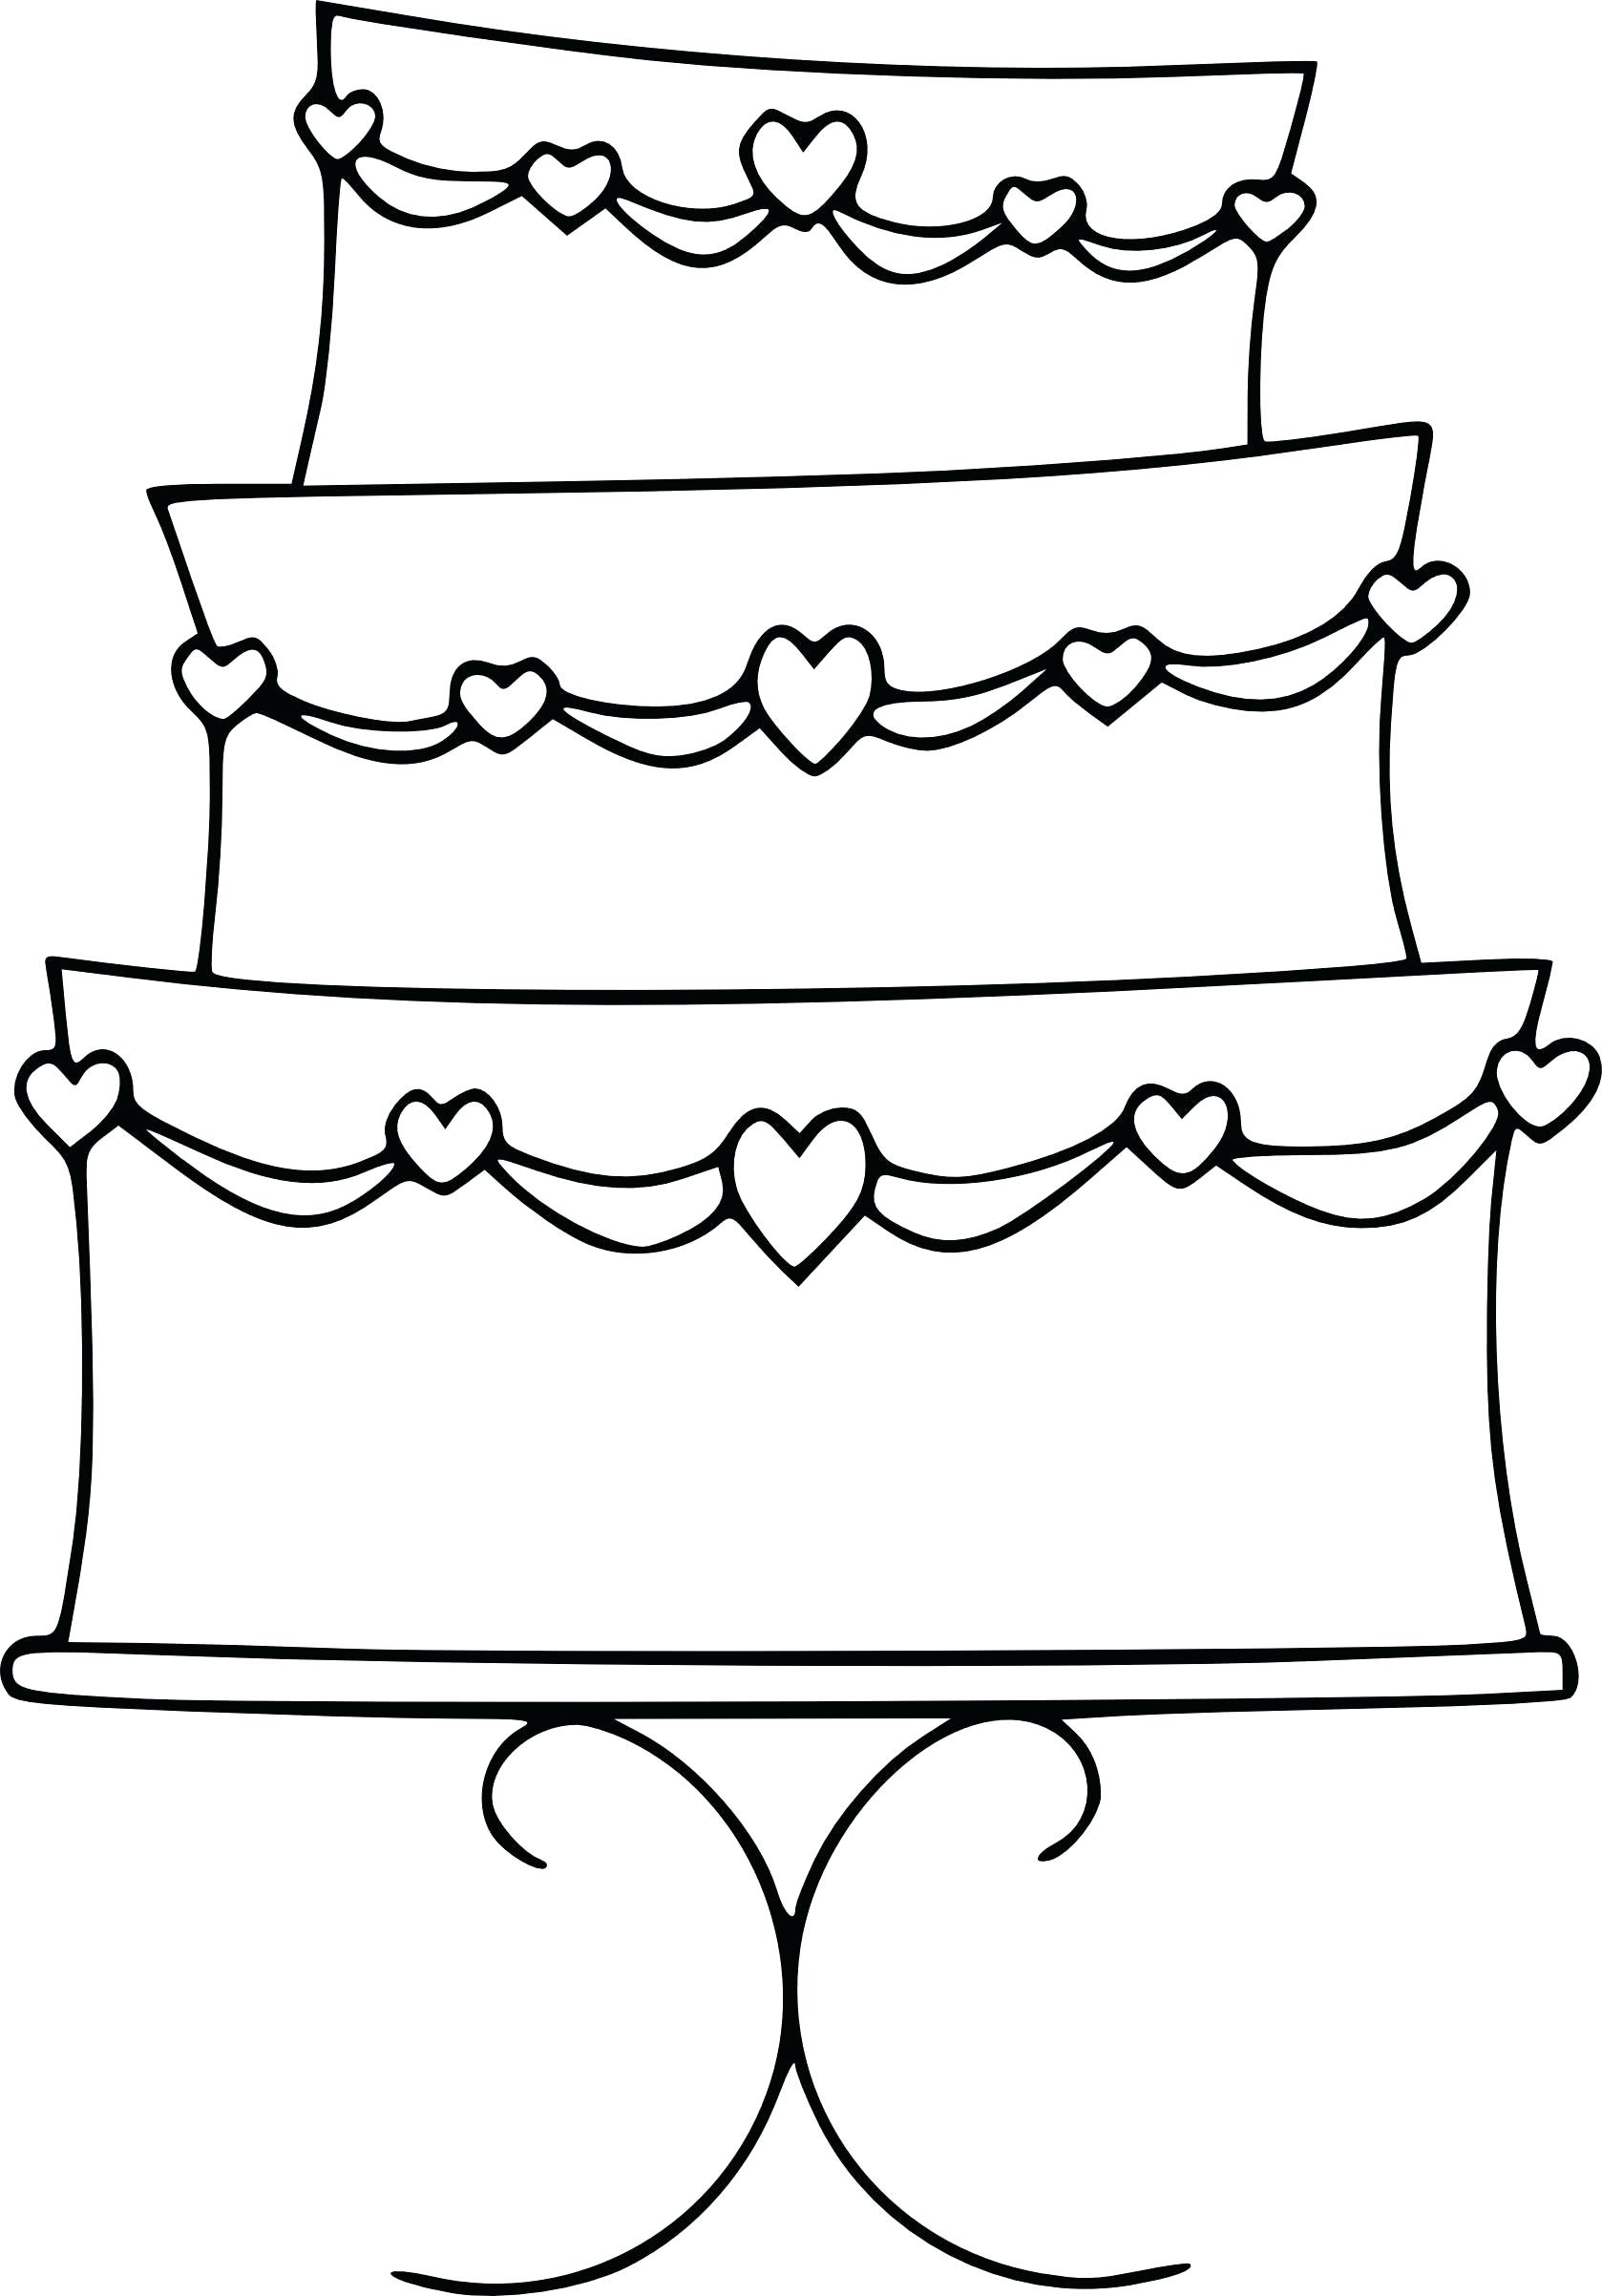 Coloring Ideas : Wedding Coloringk Printable Pages Free For Activity - Wedding Coloring Book Free Printable